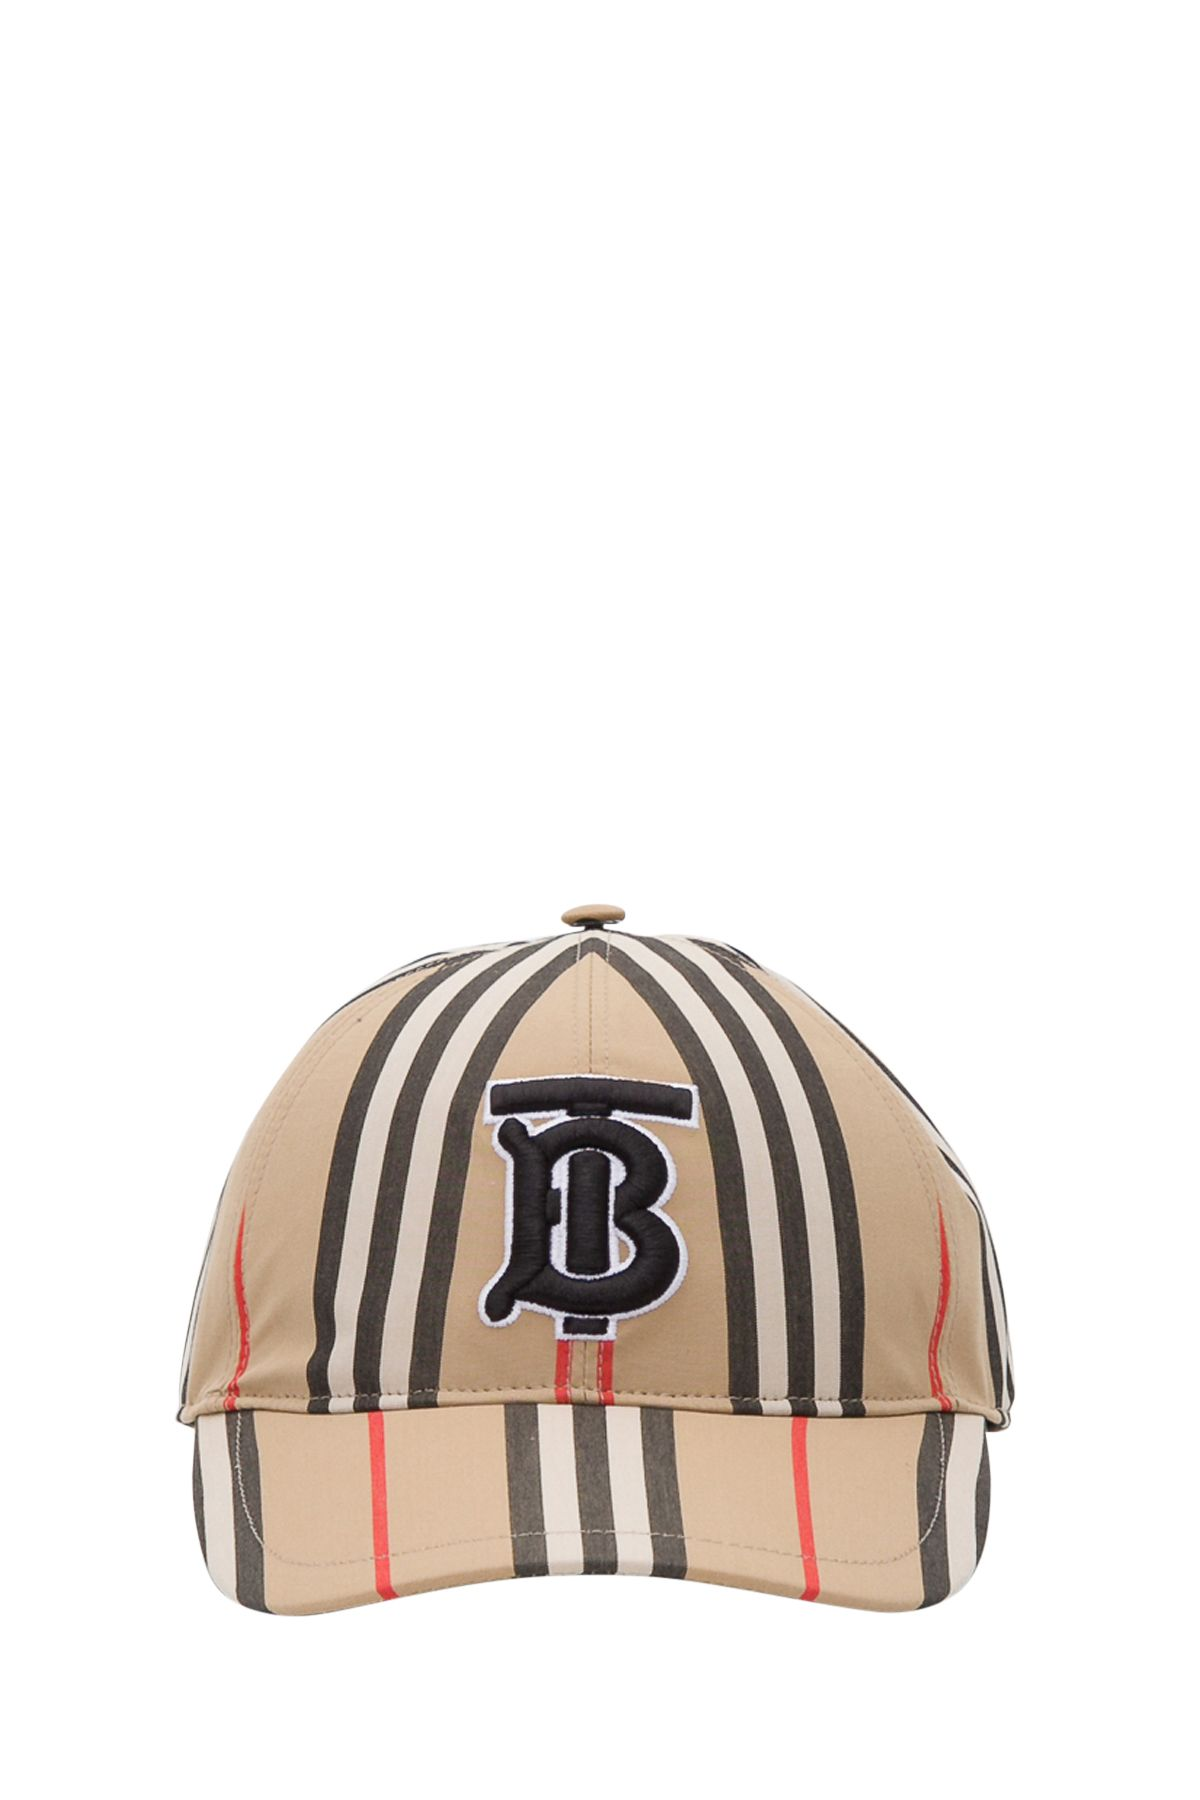 4f0143fdf0 Burberry Burberry Vintage Check Baseball Cap - Beige - 10916332 ...